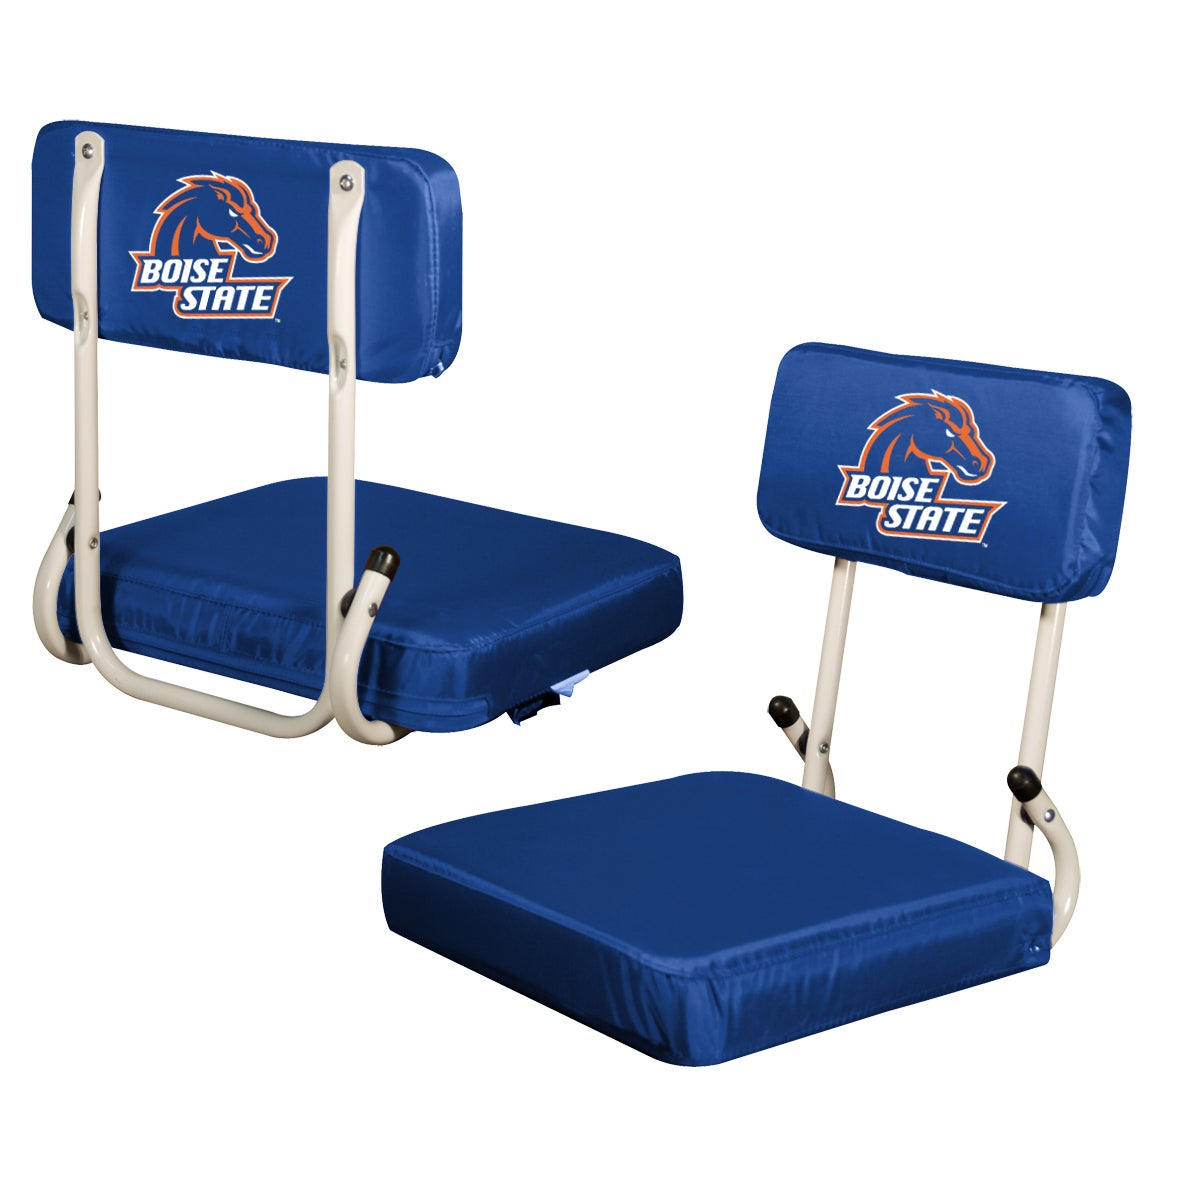 Overstock.com Boise State Hard Back Folding Stadium Seat at Sears.com